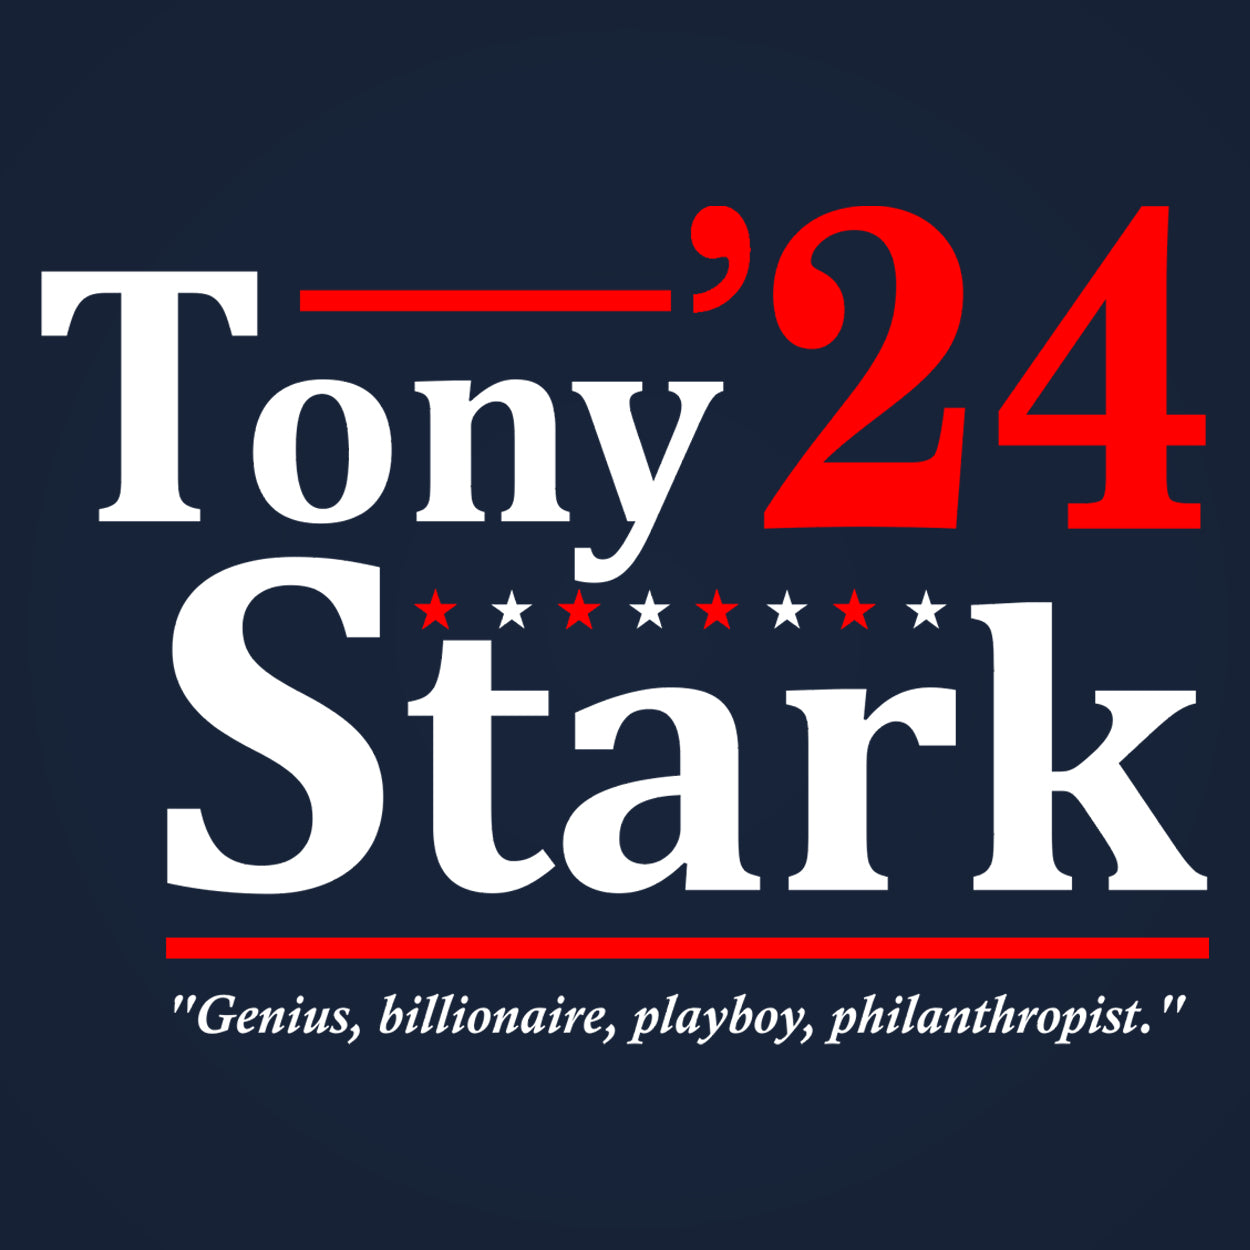 TONY STARK 2020 ELECTION - DonkeyTees